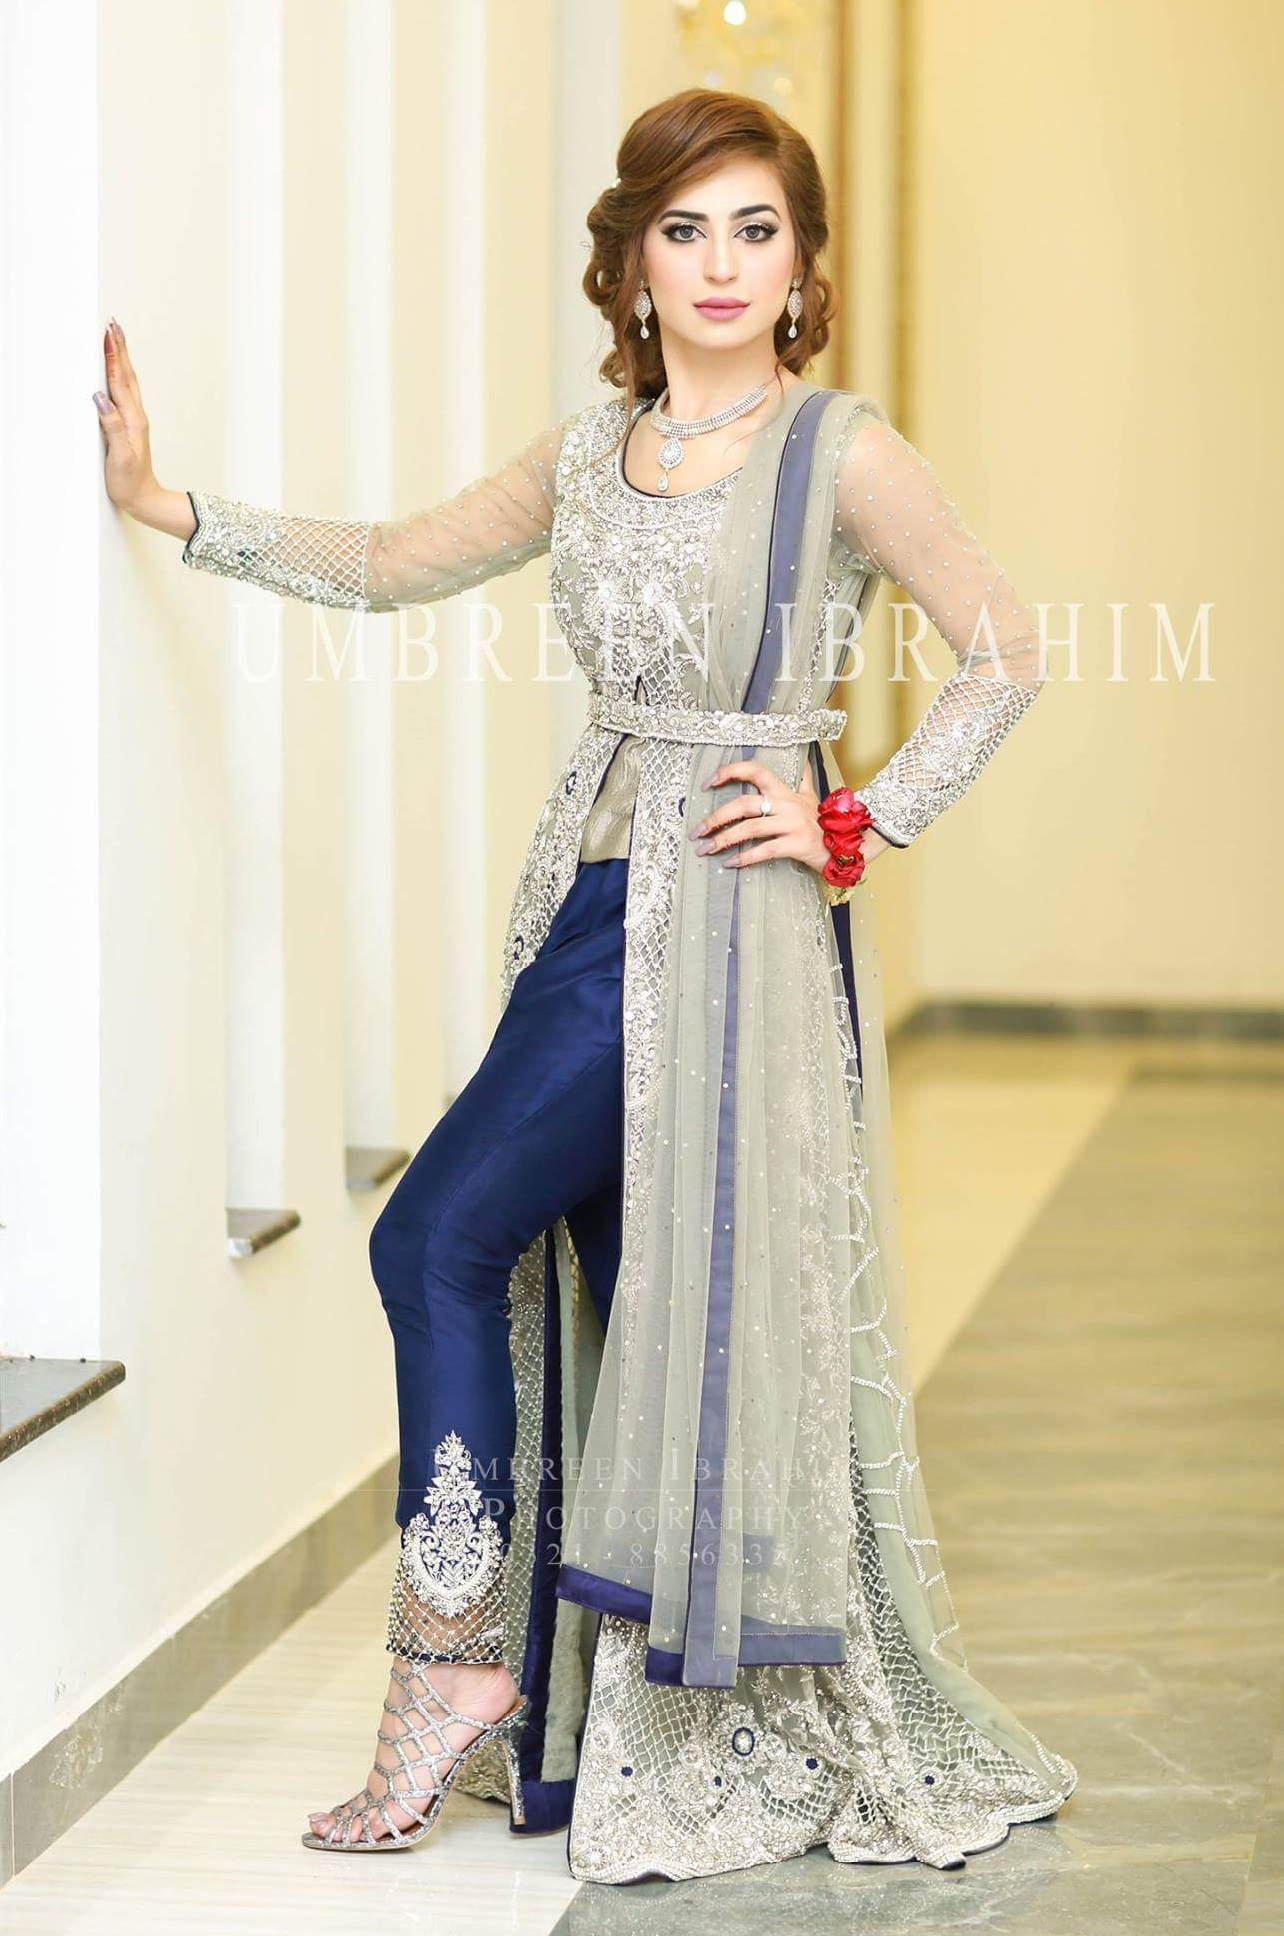 pakistani waist belt dresses wedding wear